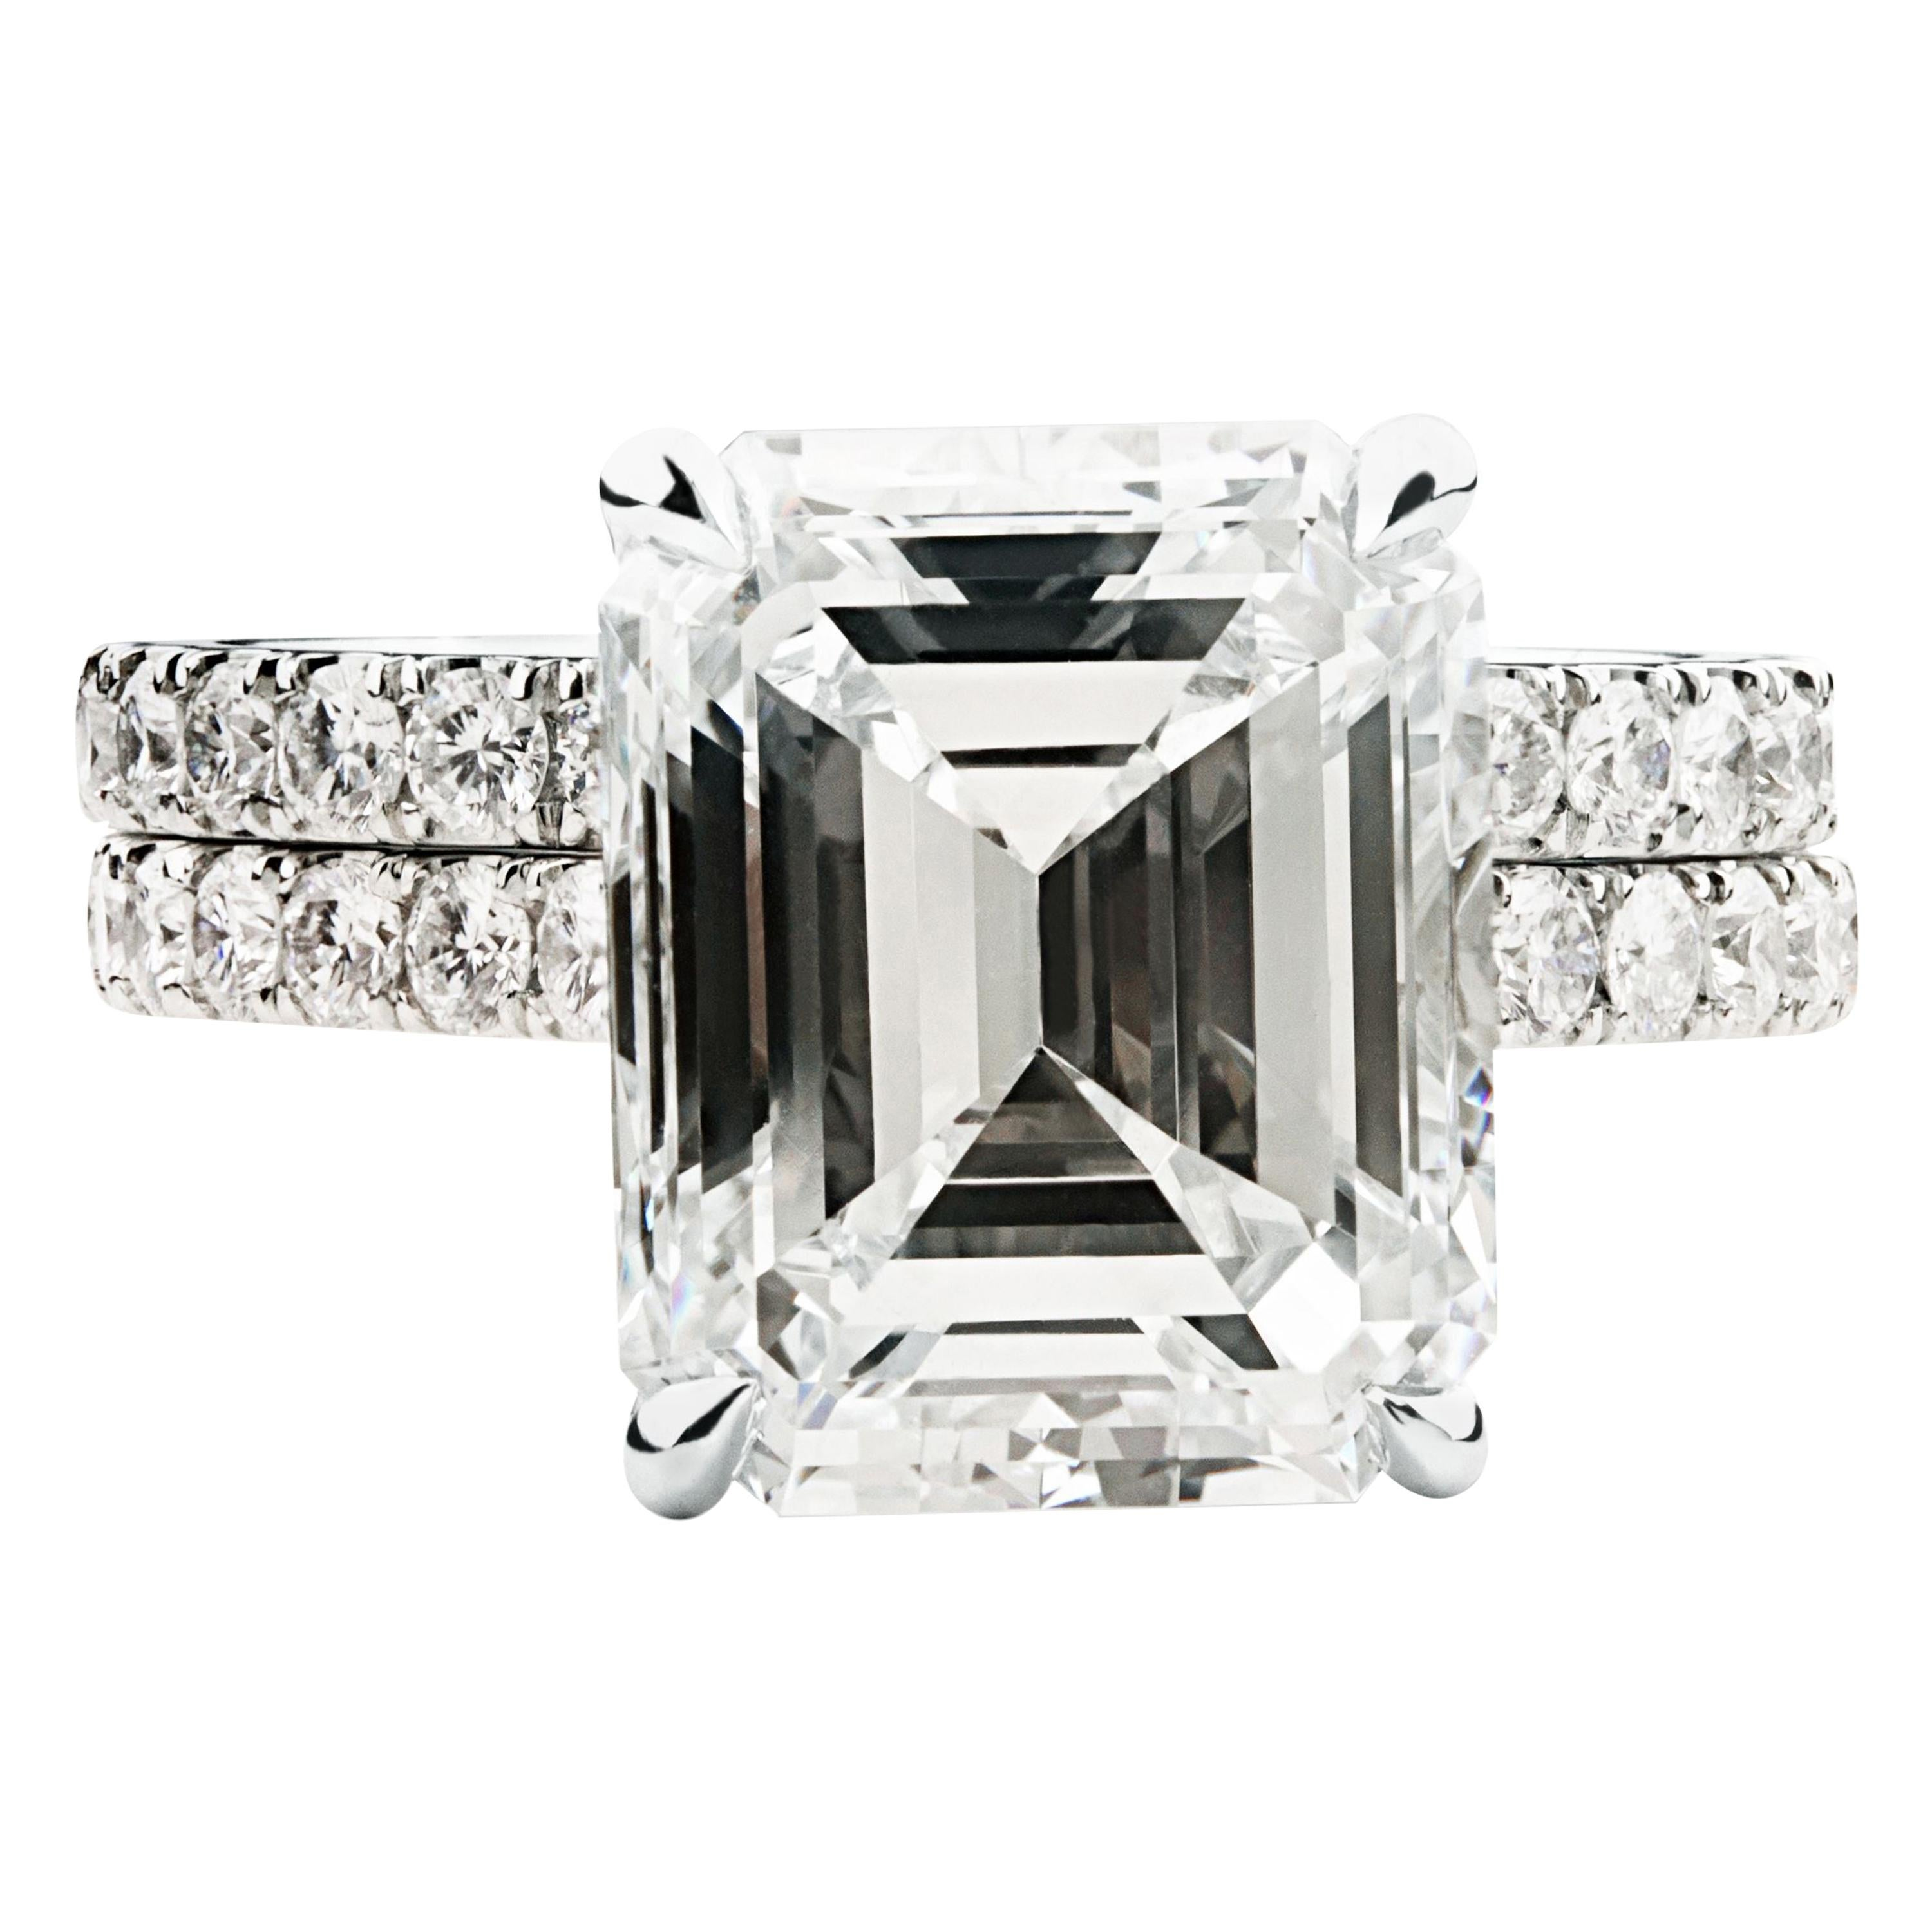 Ethonica GIA Certified Emerald Cut Diamond Engagement Ring Suit in Platinum